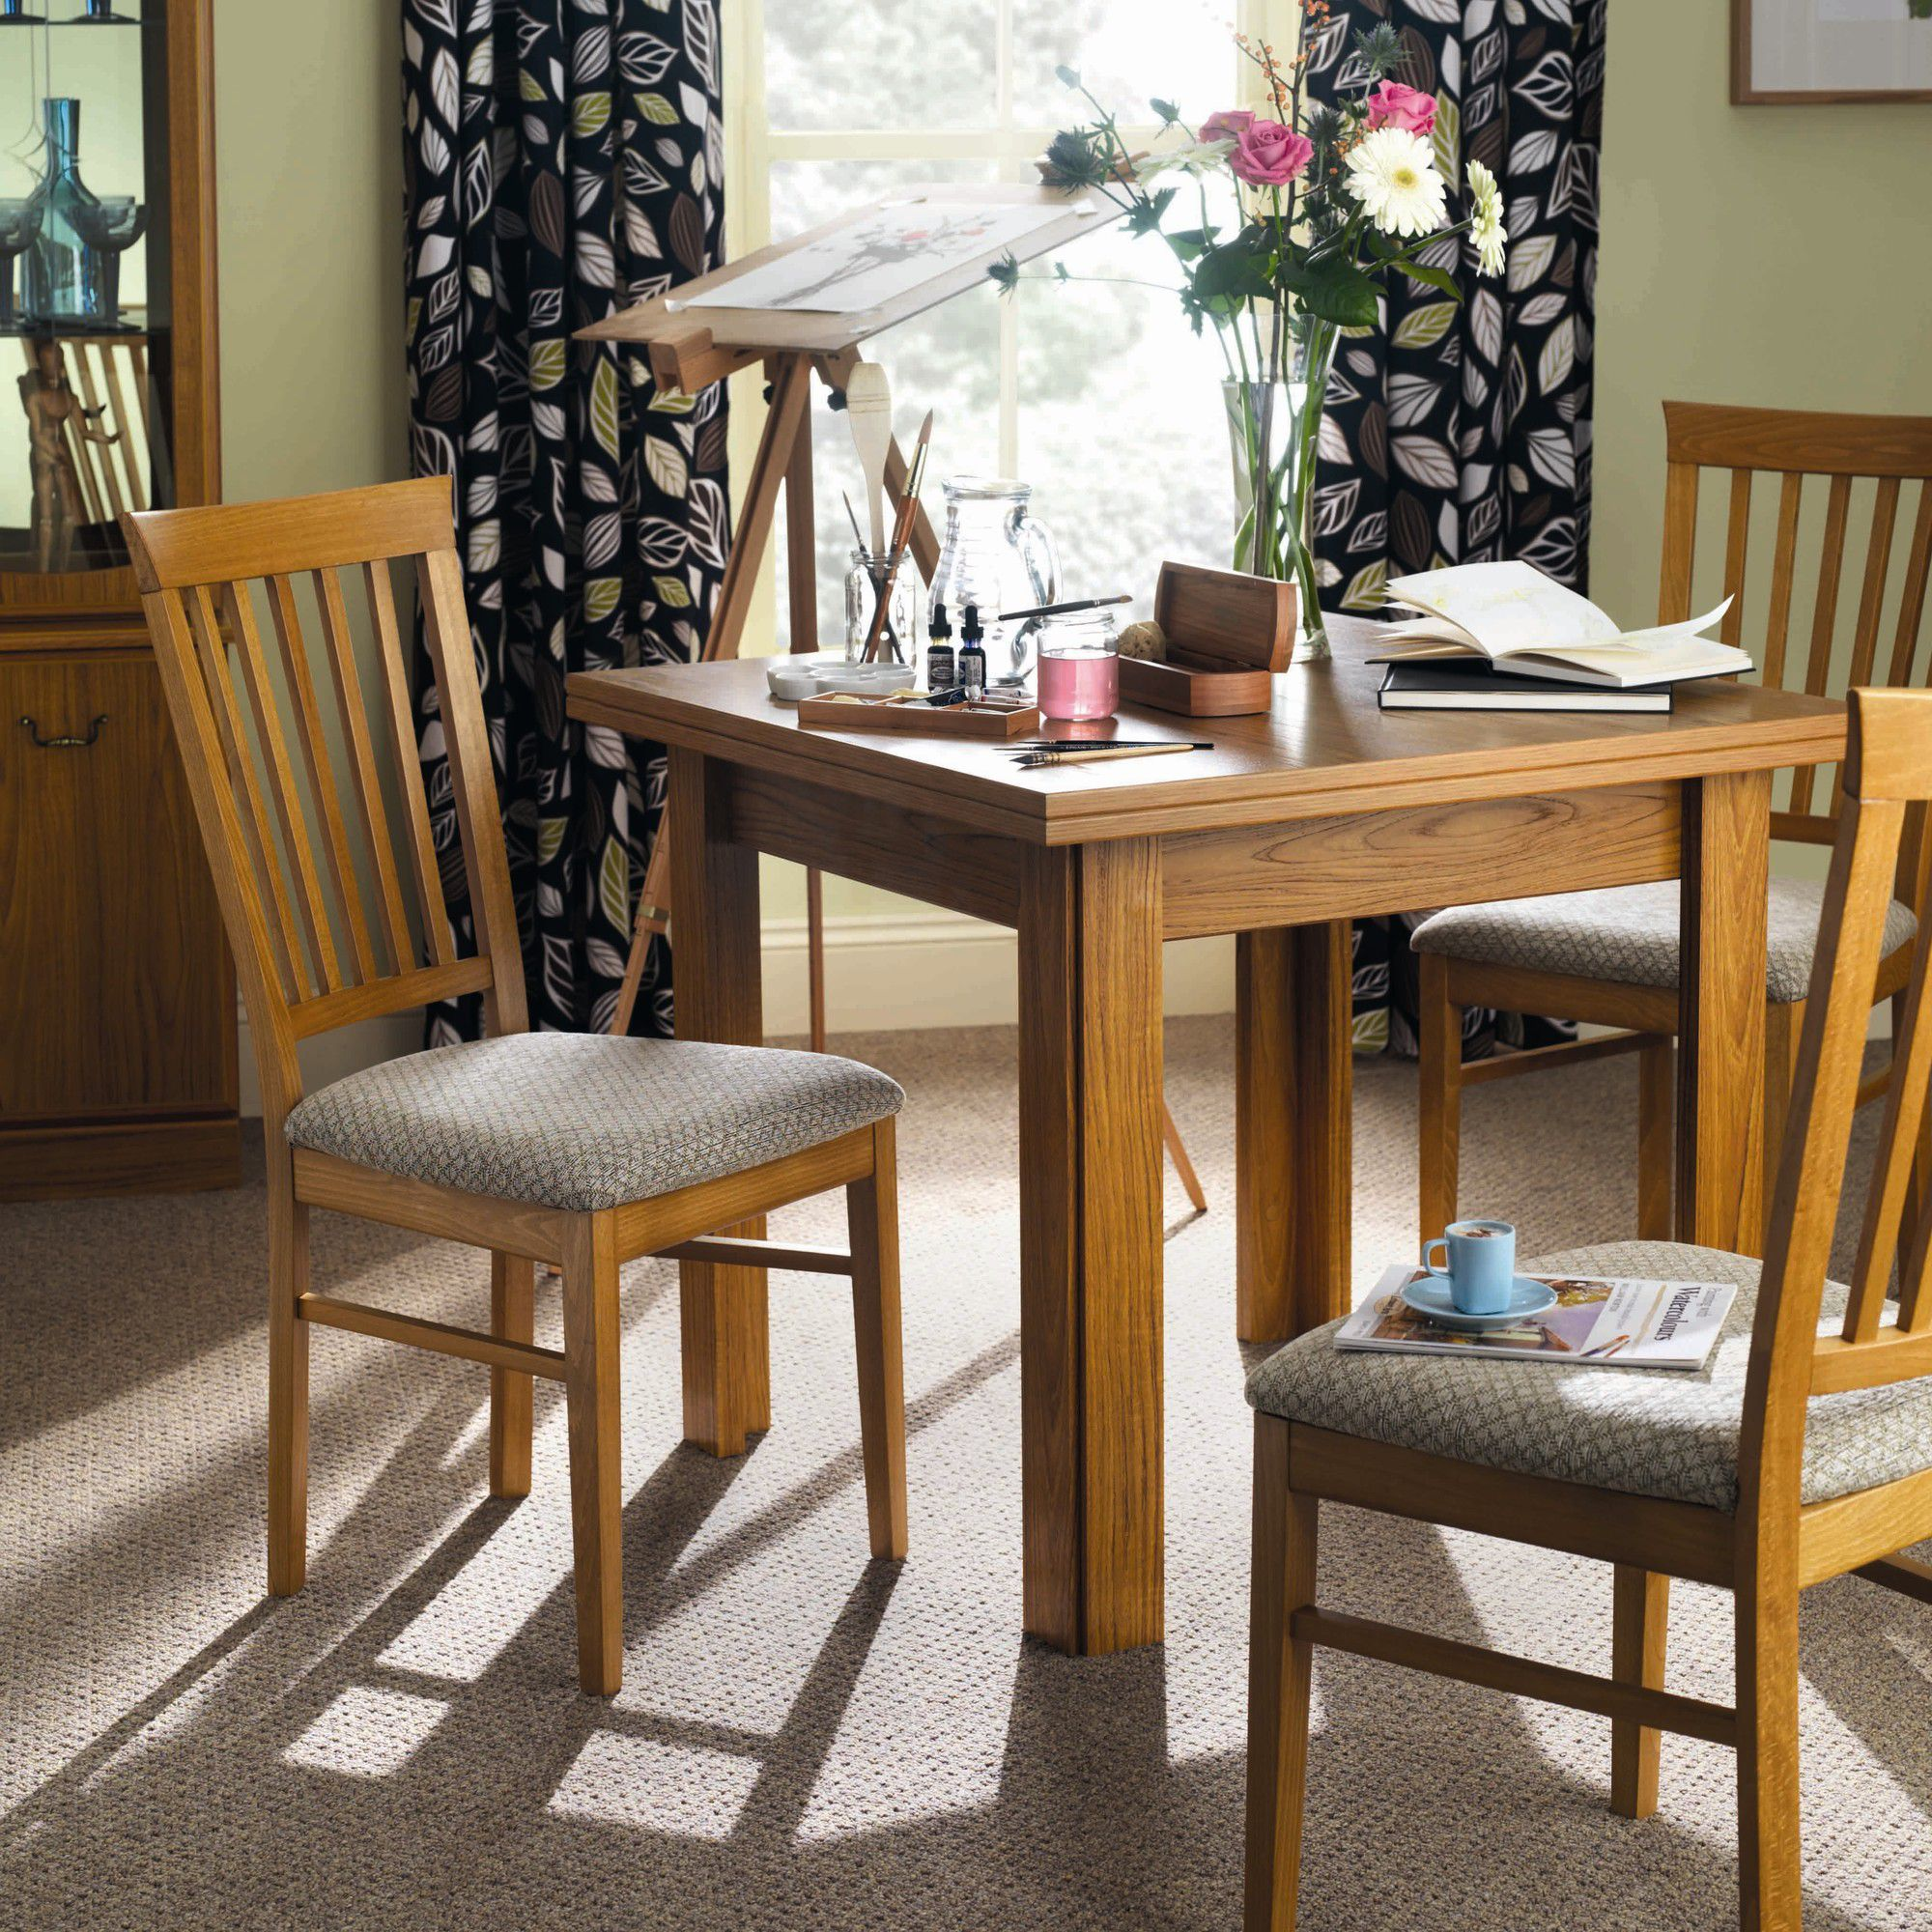 Caxton Tennyson Butterfly Dining Set with 4 Slatted Back Dining Chairs in Teak - Green at Tesco Direct